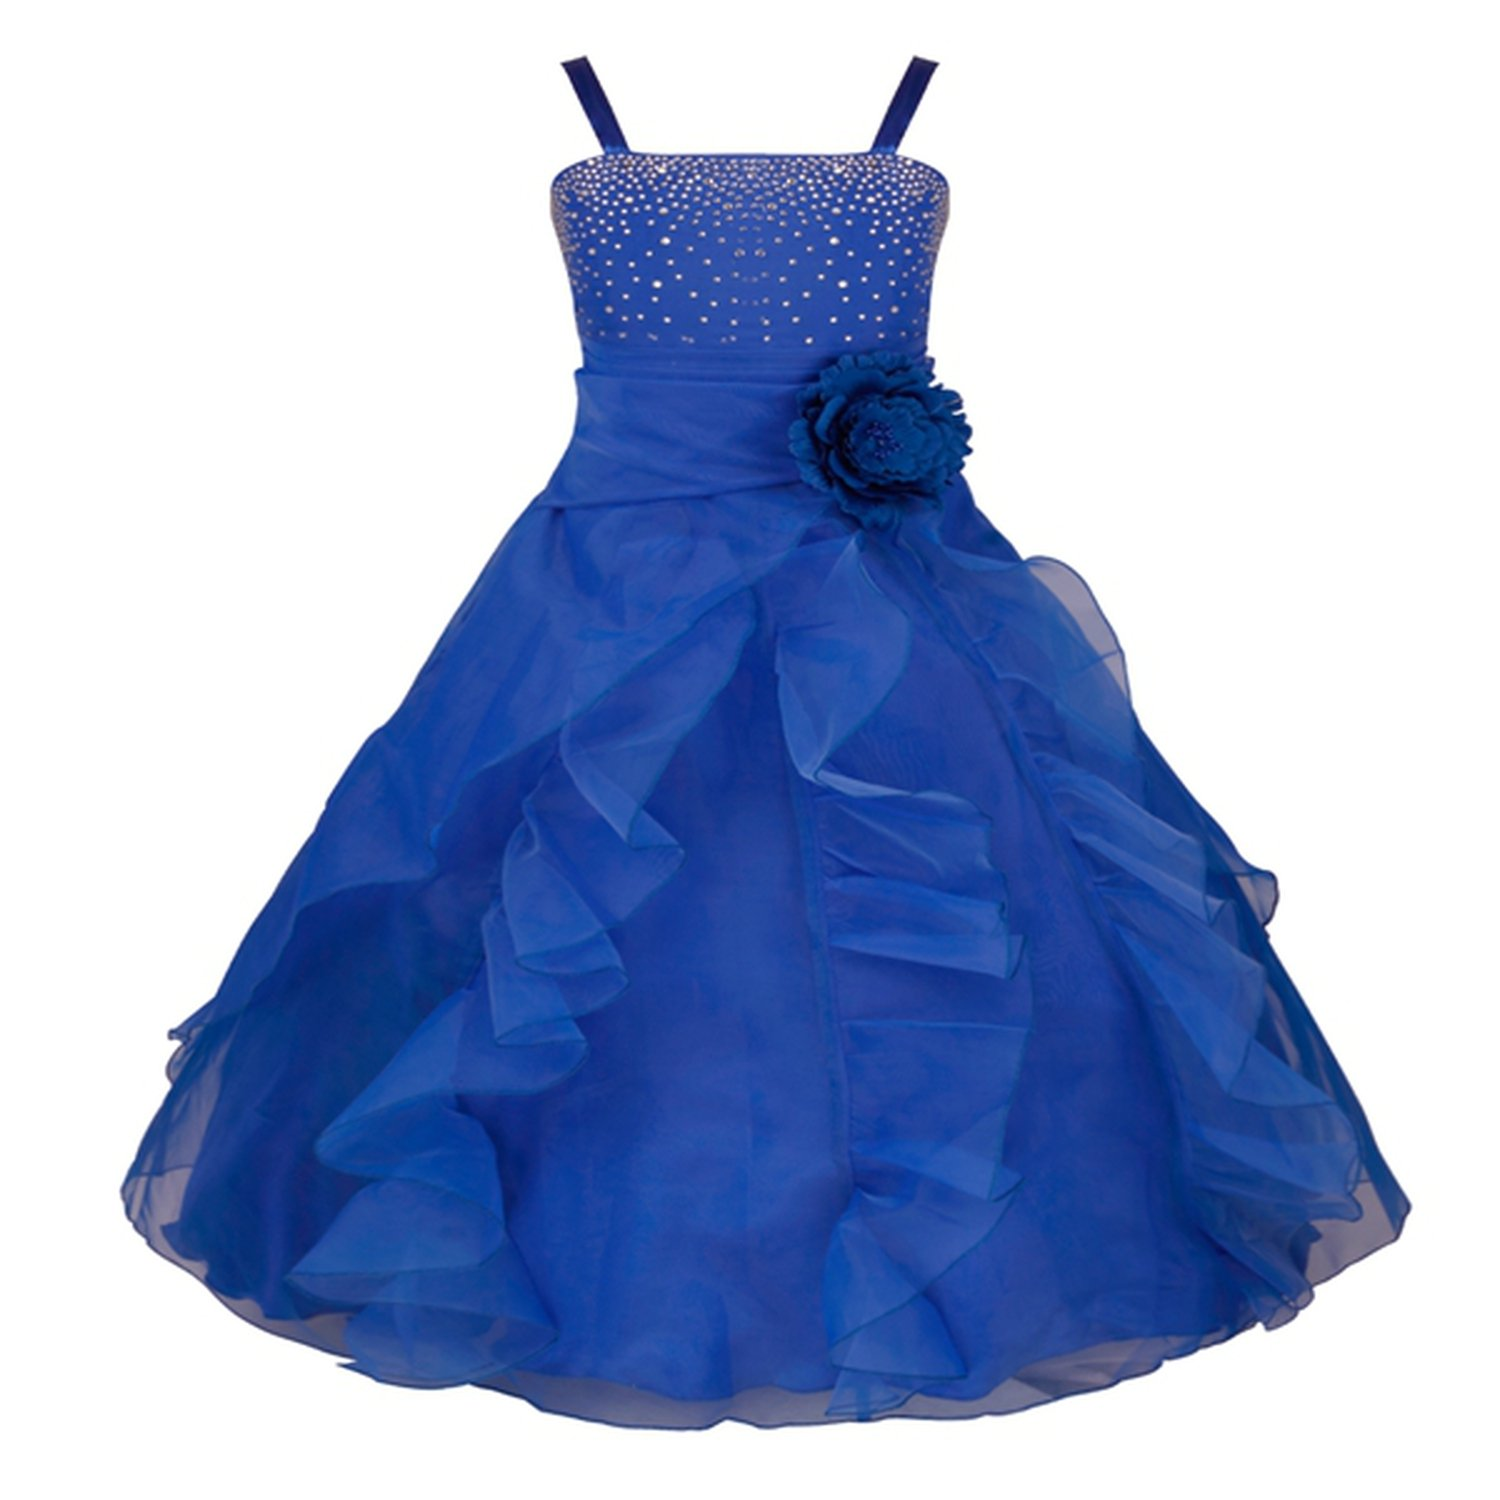 Kids Girls Sleeveless Prom Gown Flower Girl Dresses Princess Wedding Communion Graduation Party Dress with Bowknot 2-14Y,Blue,Child-14